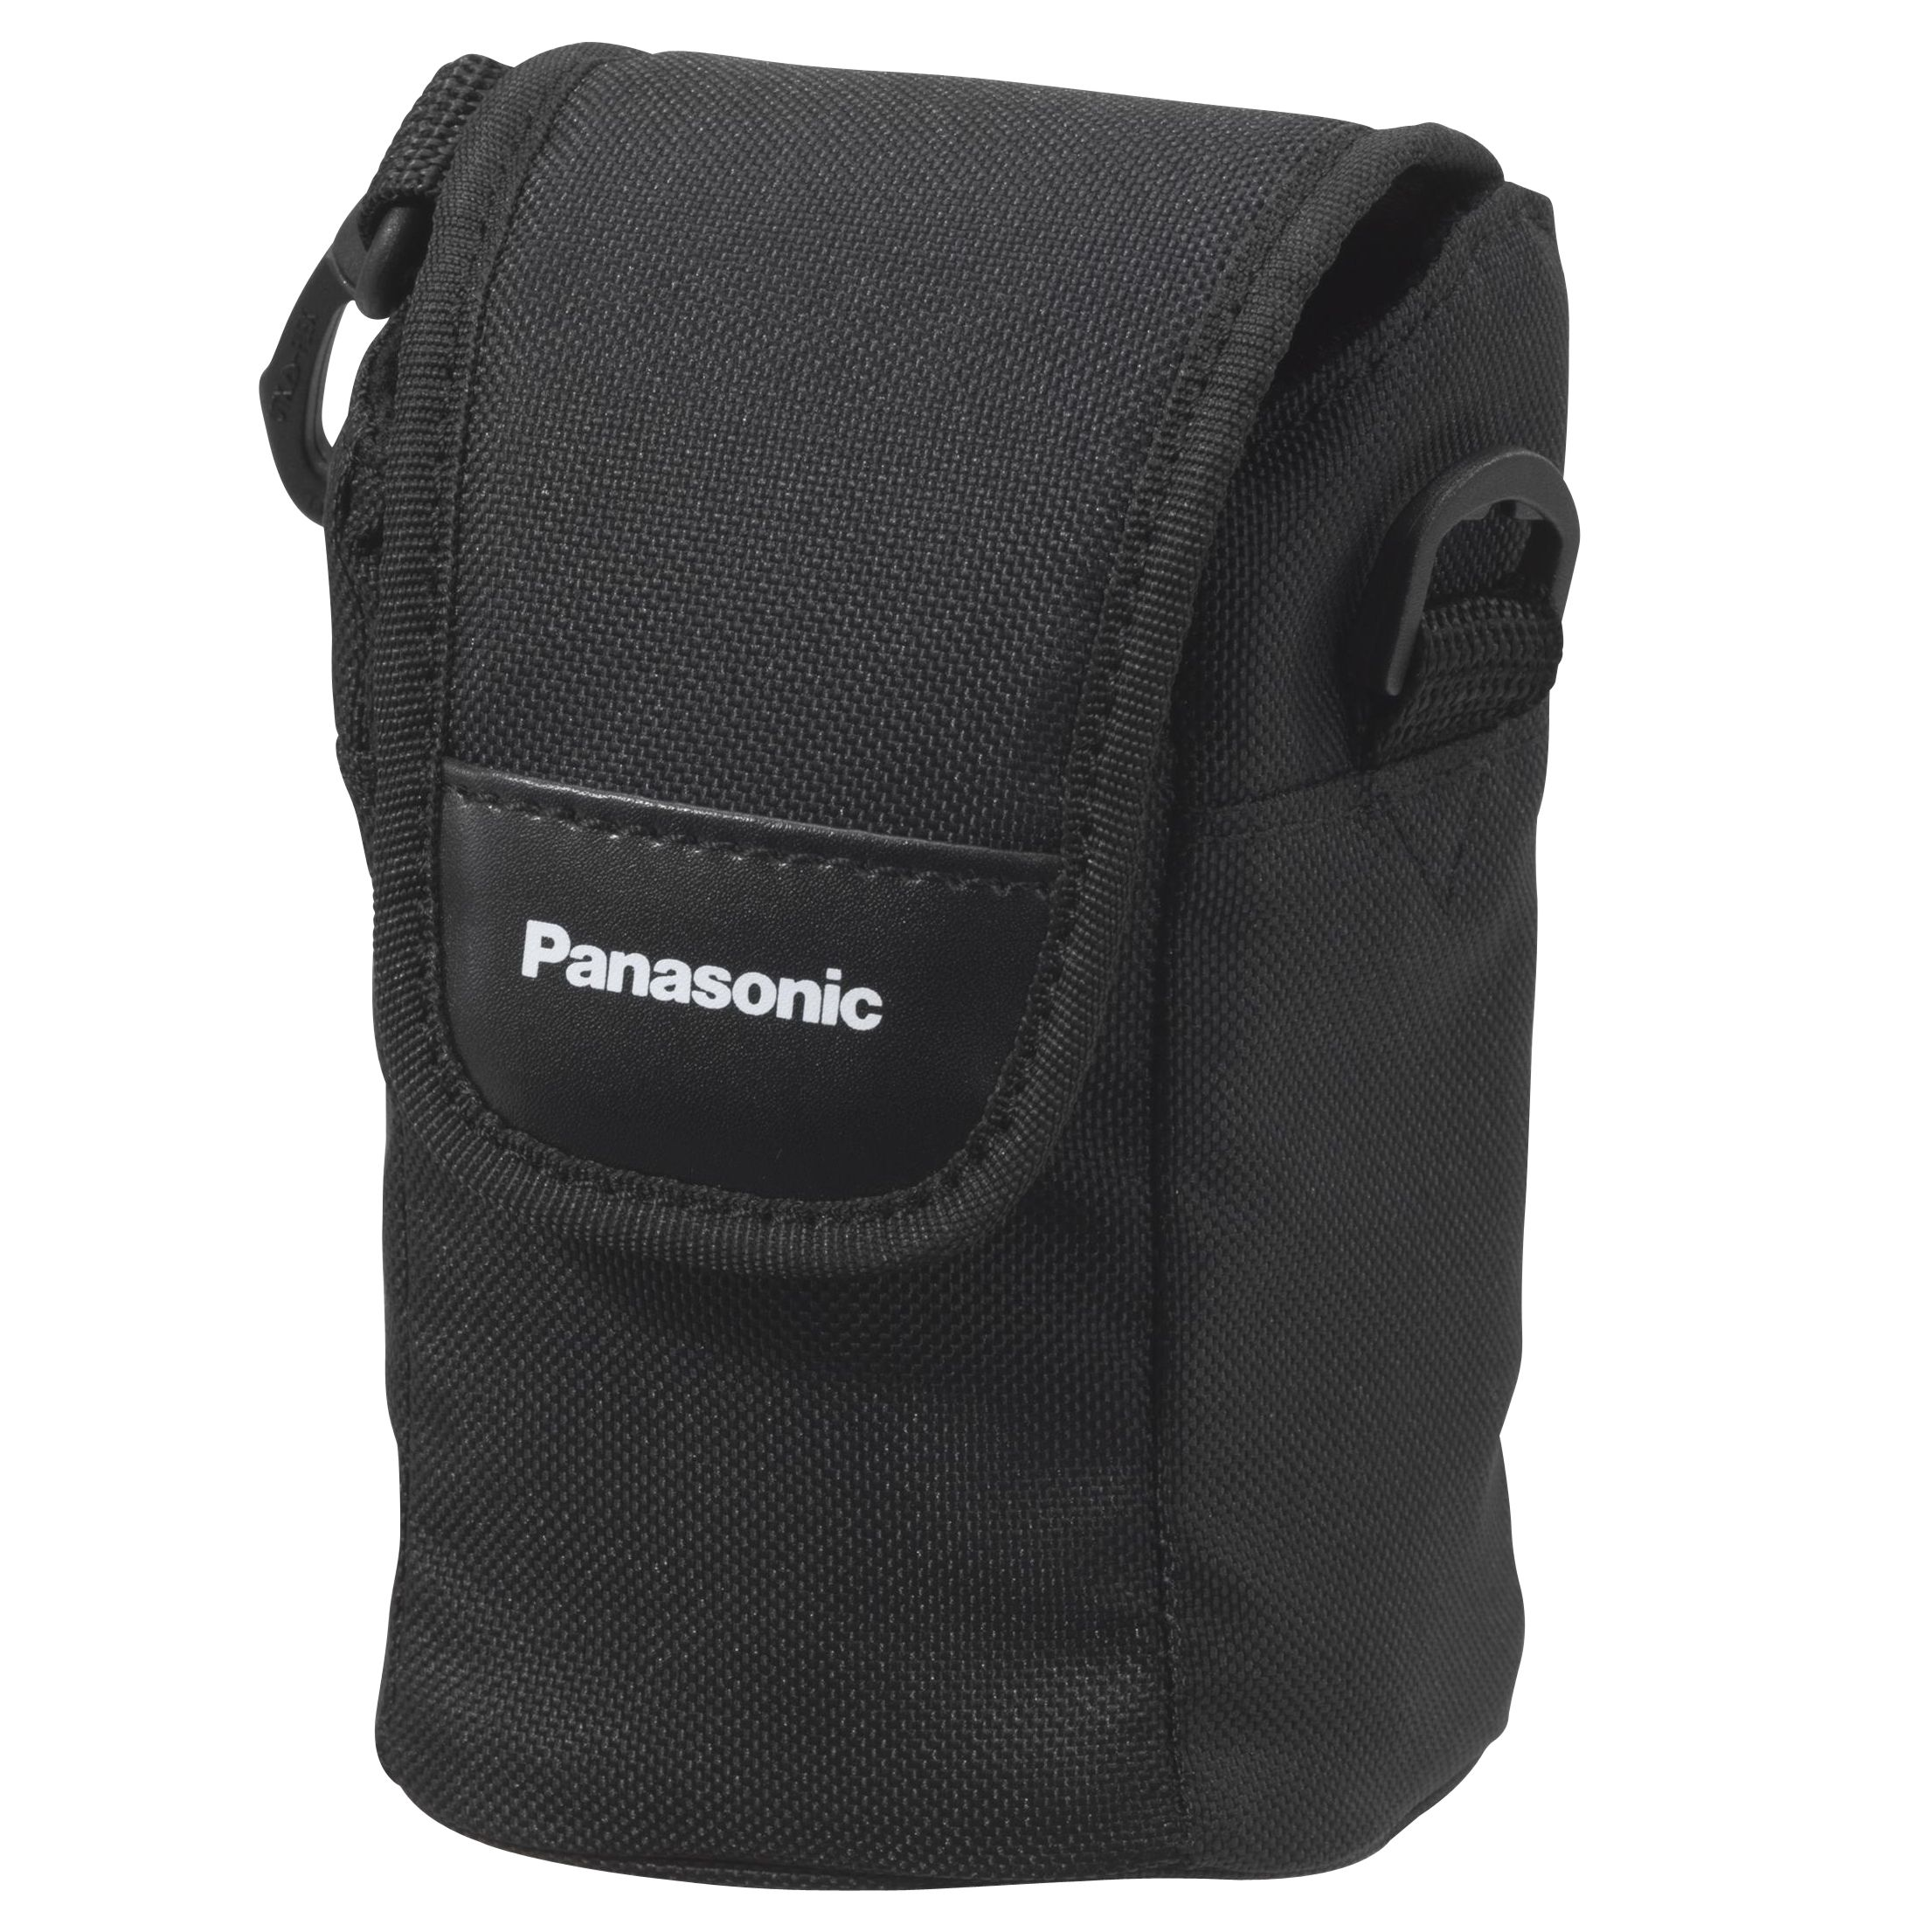 Panasonic Vw-ps57xe-k Camcorder Case